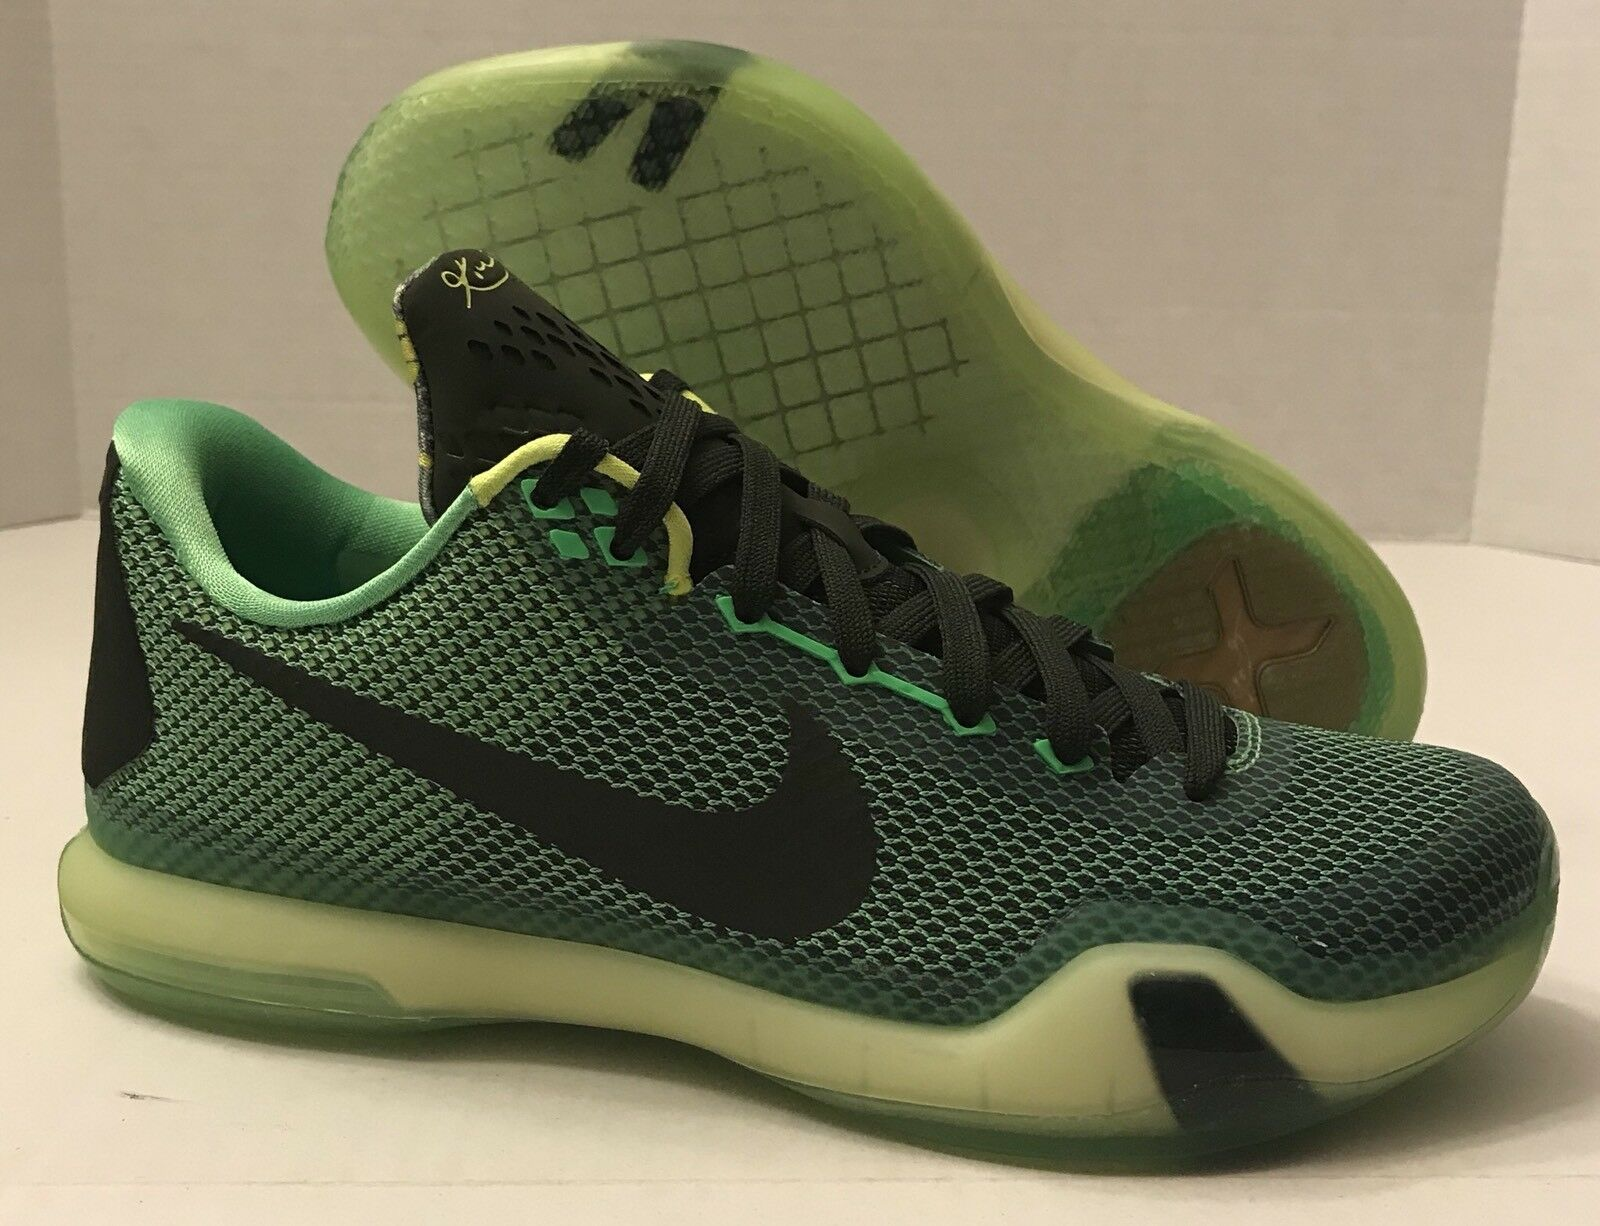 NIKE KOBE BRYANT X 10 BASKETBALL SHOES 705317-333 POISON GREEN (MEN'S 7)